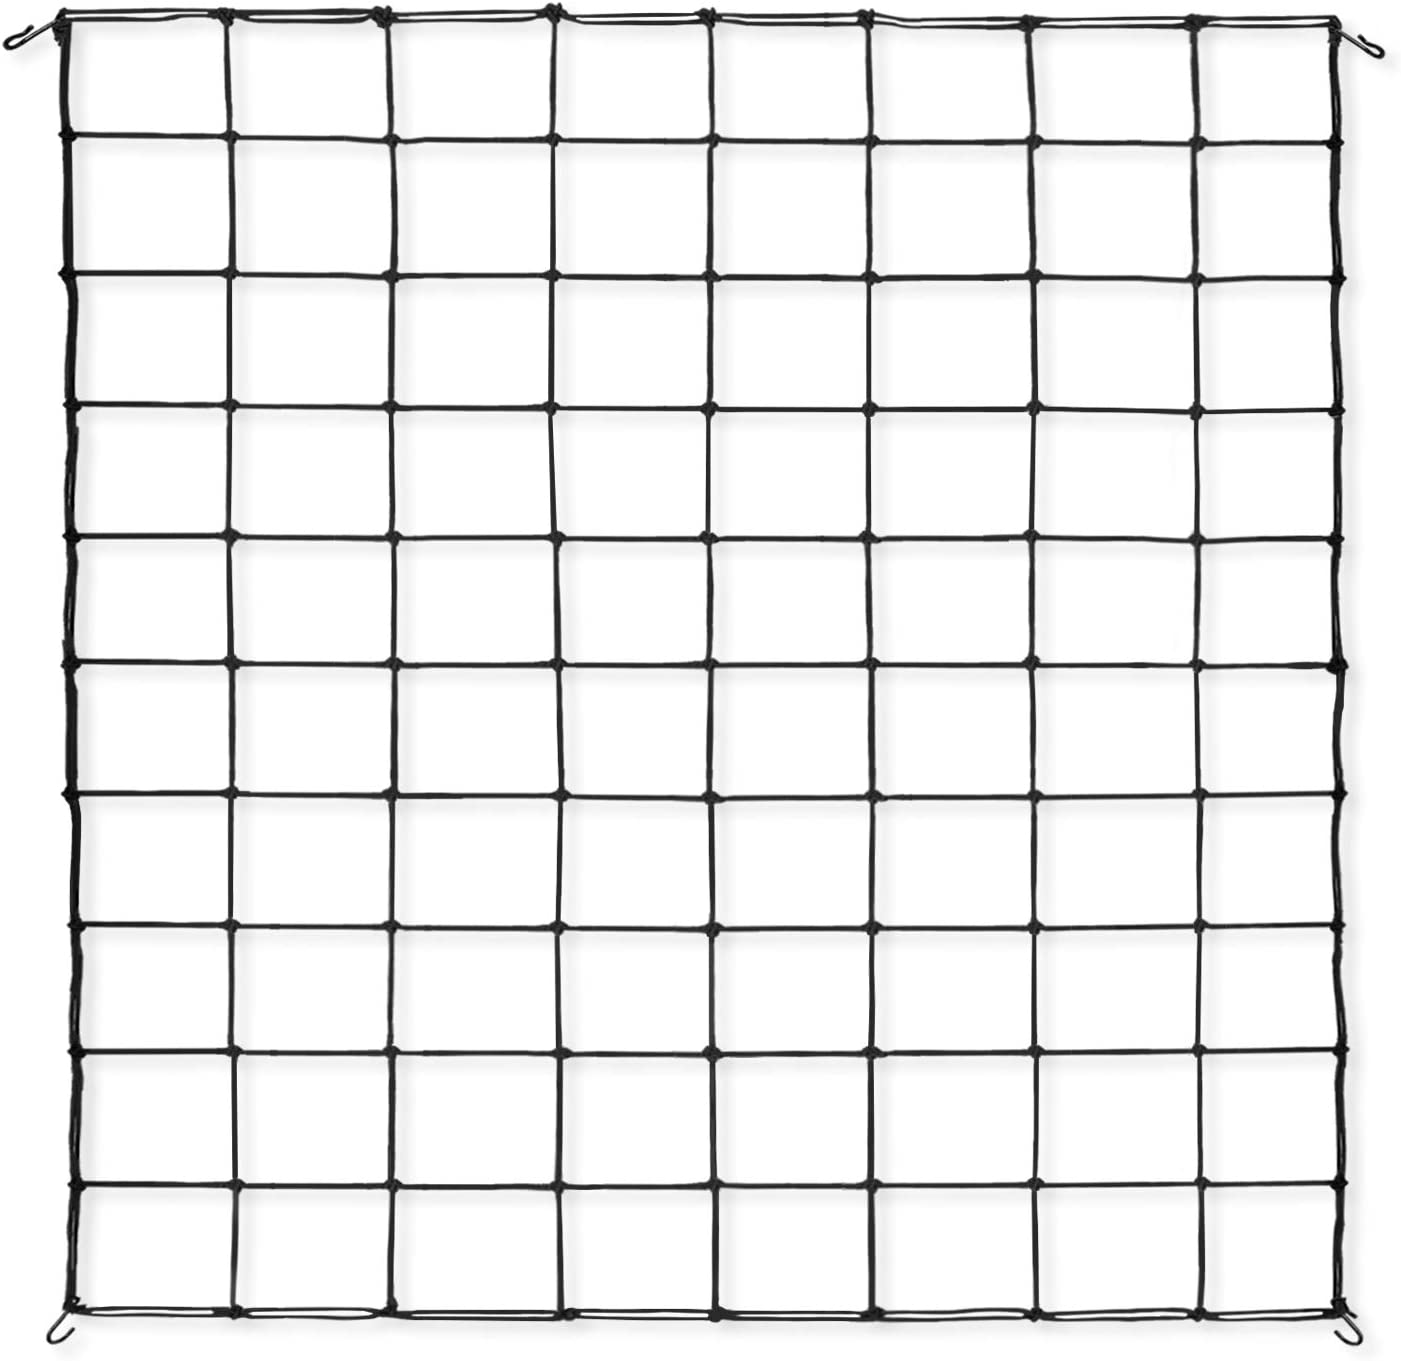 VIVOSUN 1-Pack 3x4FT Elastic Trellis Netting with Hooks for Grow Tents